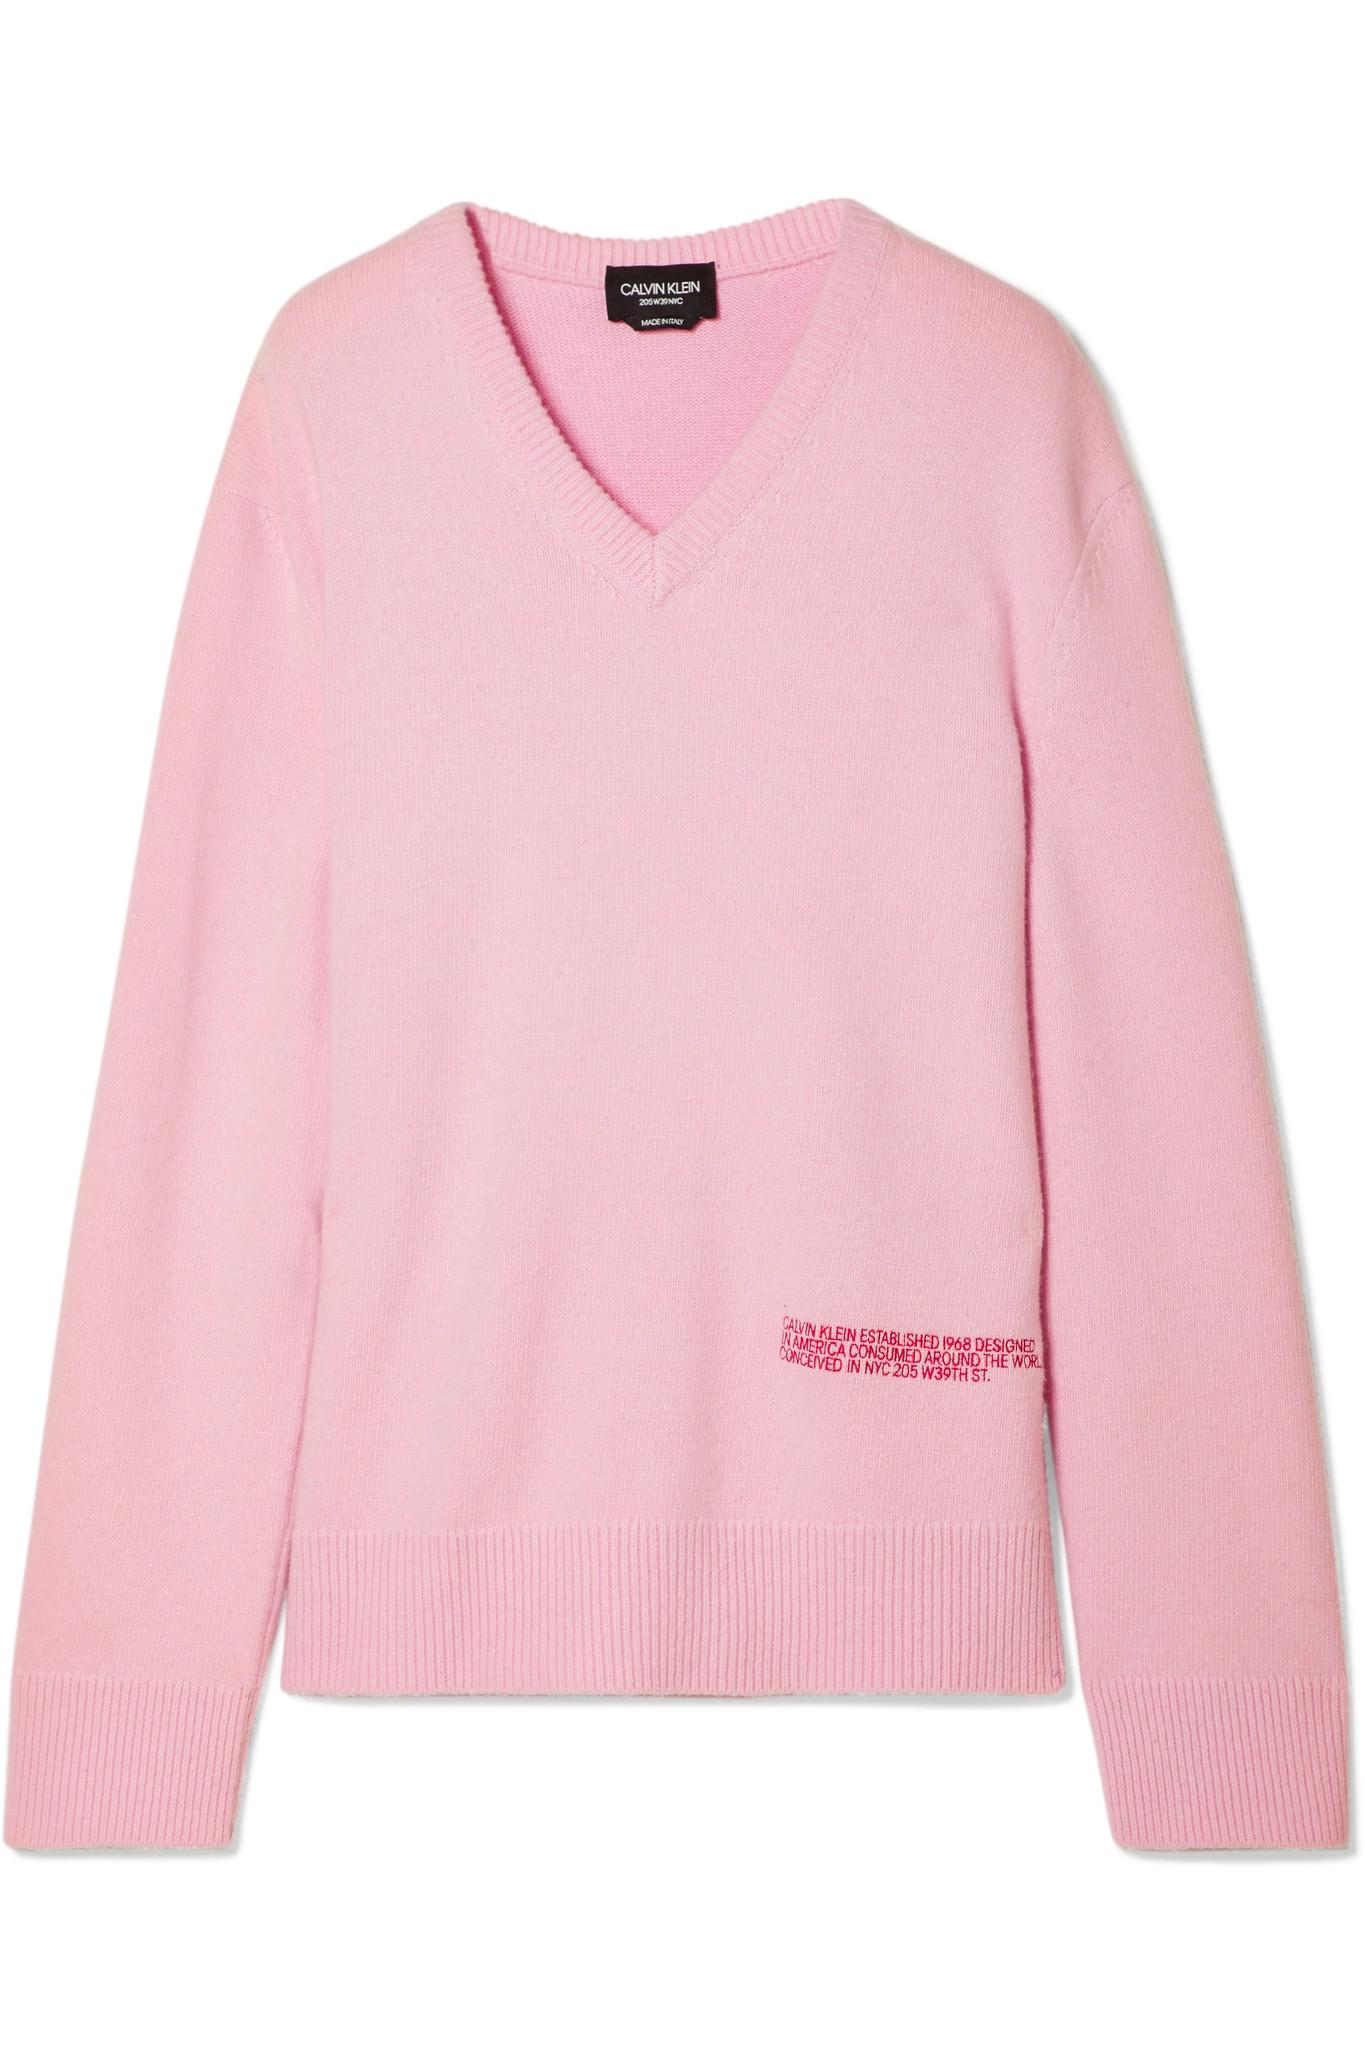 ad57f12055ef CALVIN KLEIN 205W39NYC. Women s Pink Embroidered Wool And Cotton-blend  Sweater